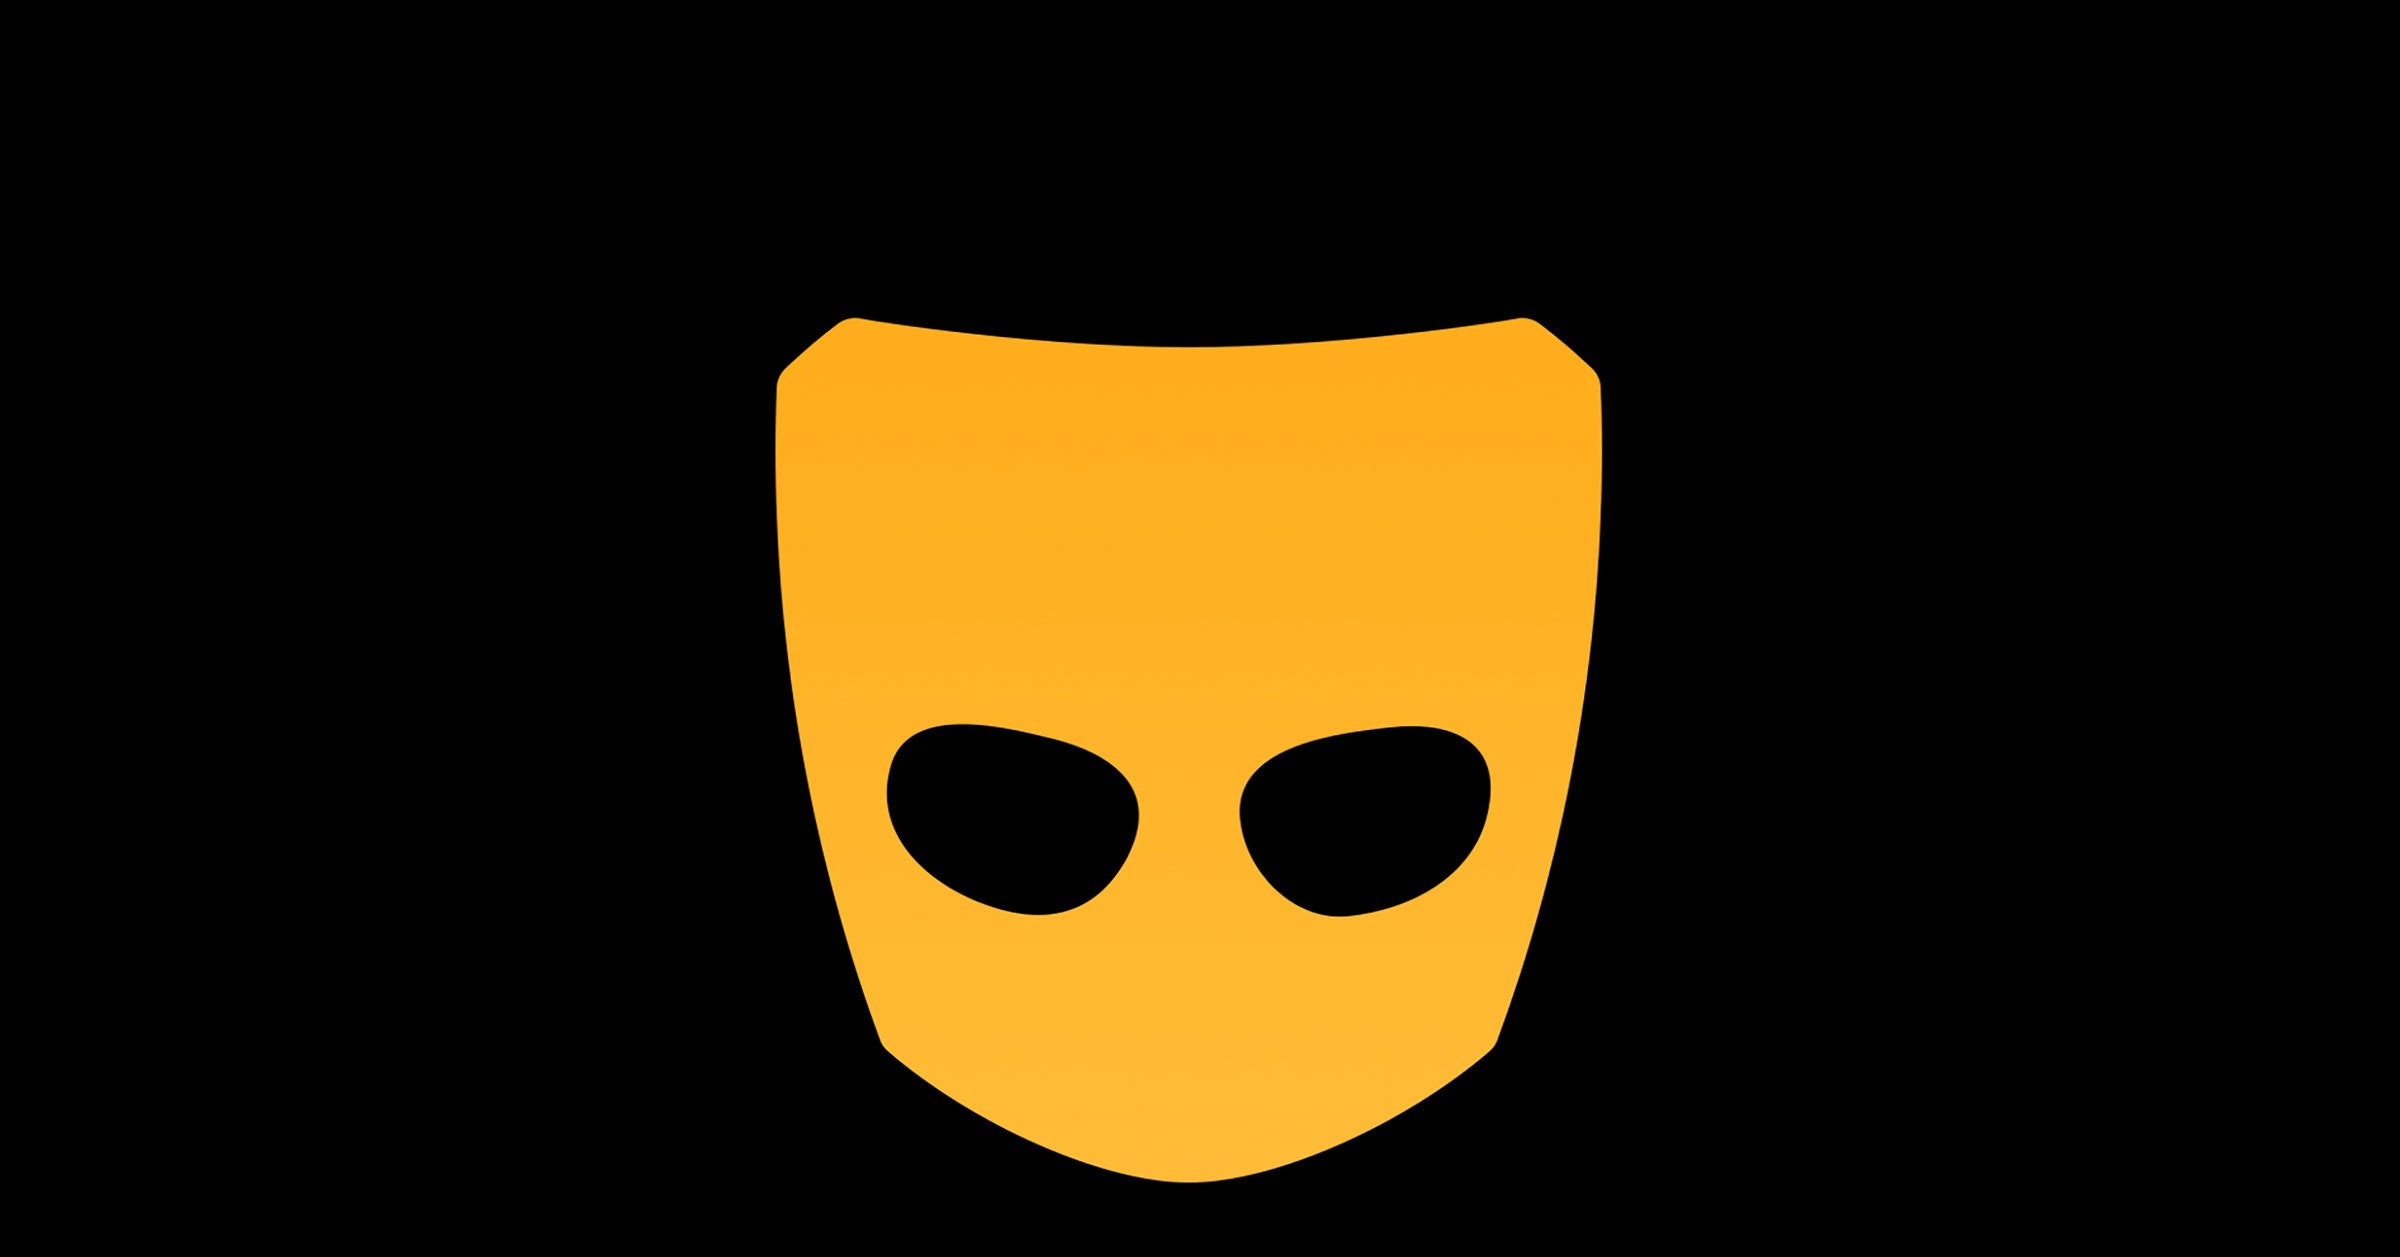 Product Critique Of Grindr An Impossibly Broken App By Griffin Somaratne The History Philosophy And Ethics Of Design Medium